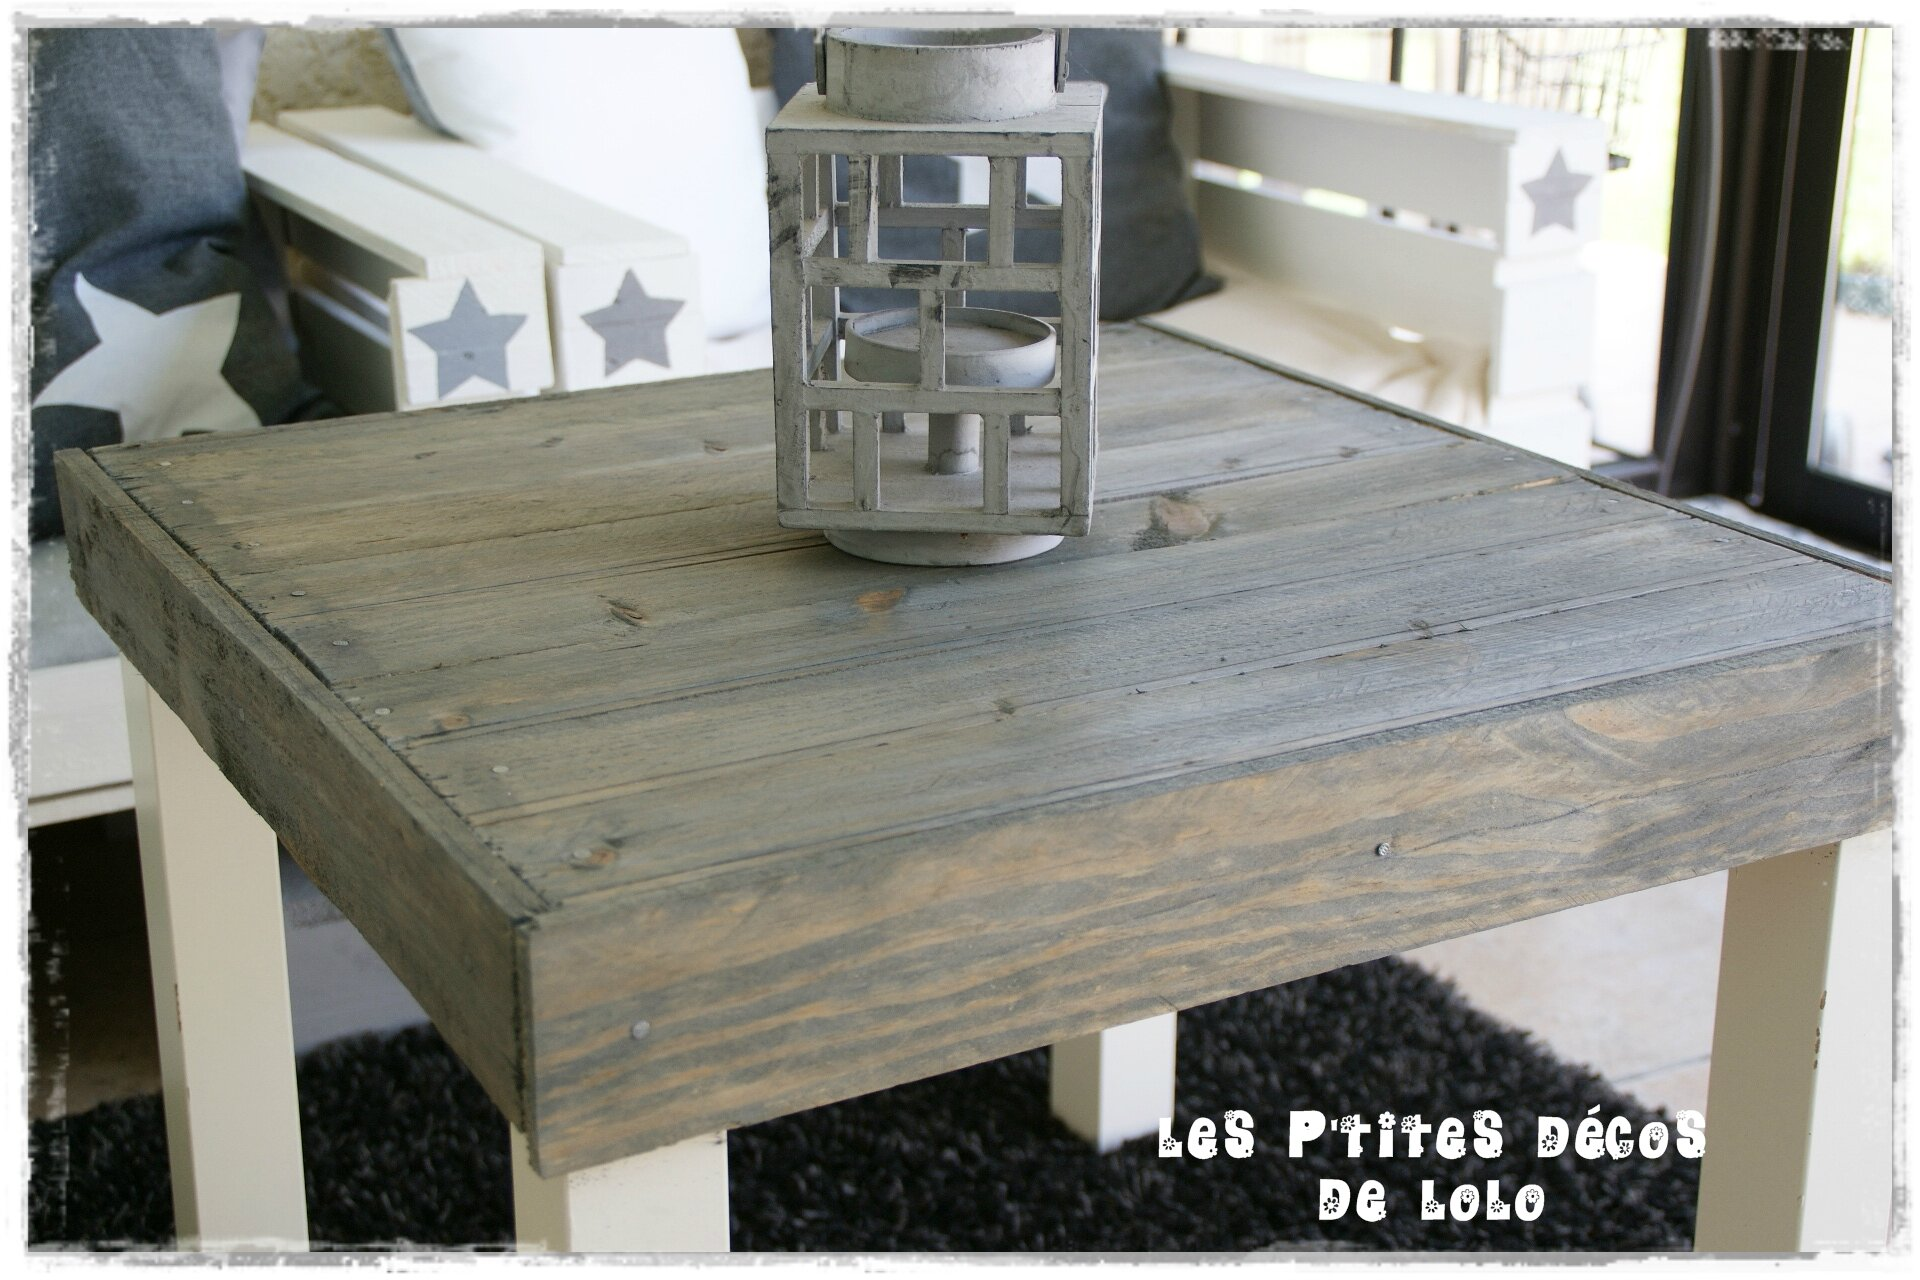 Decoration jardin recup id es de for Idee table basse recup